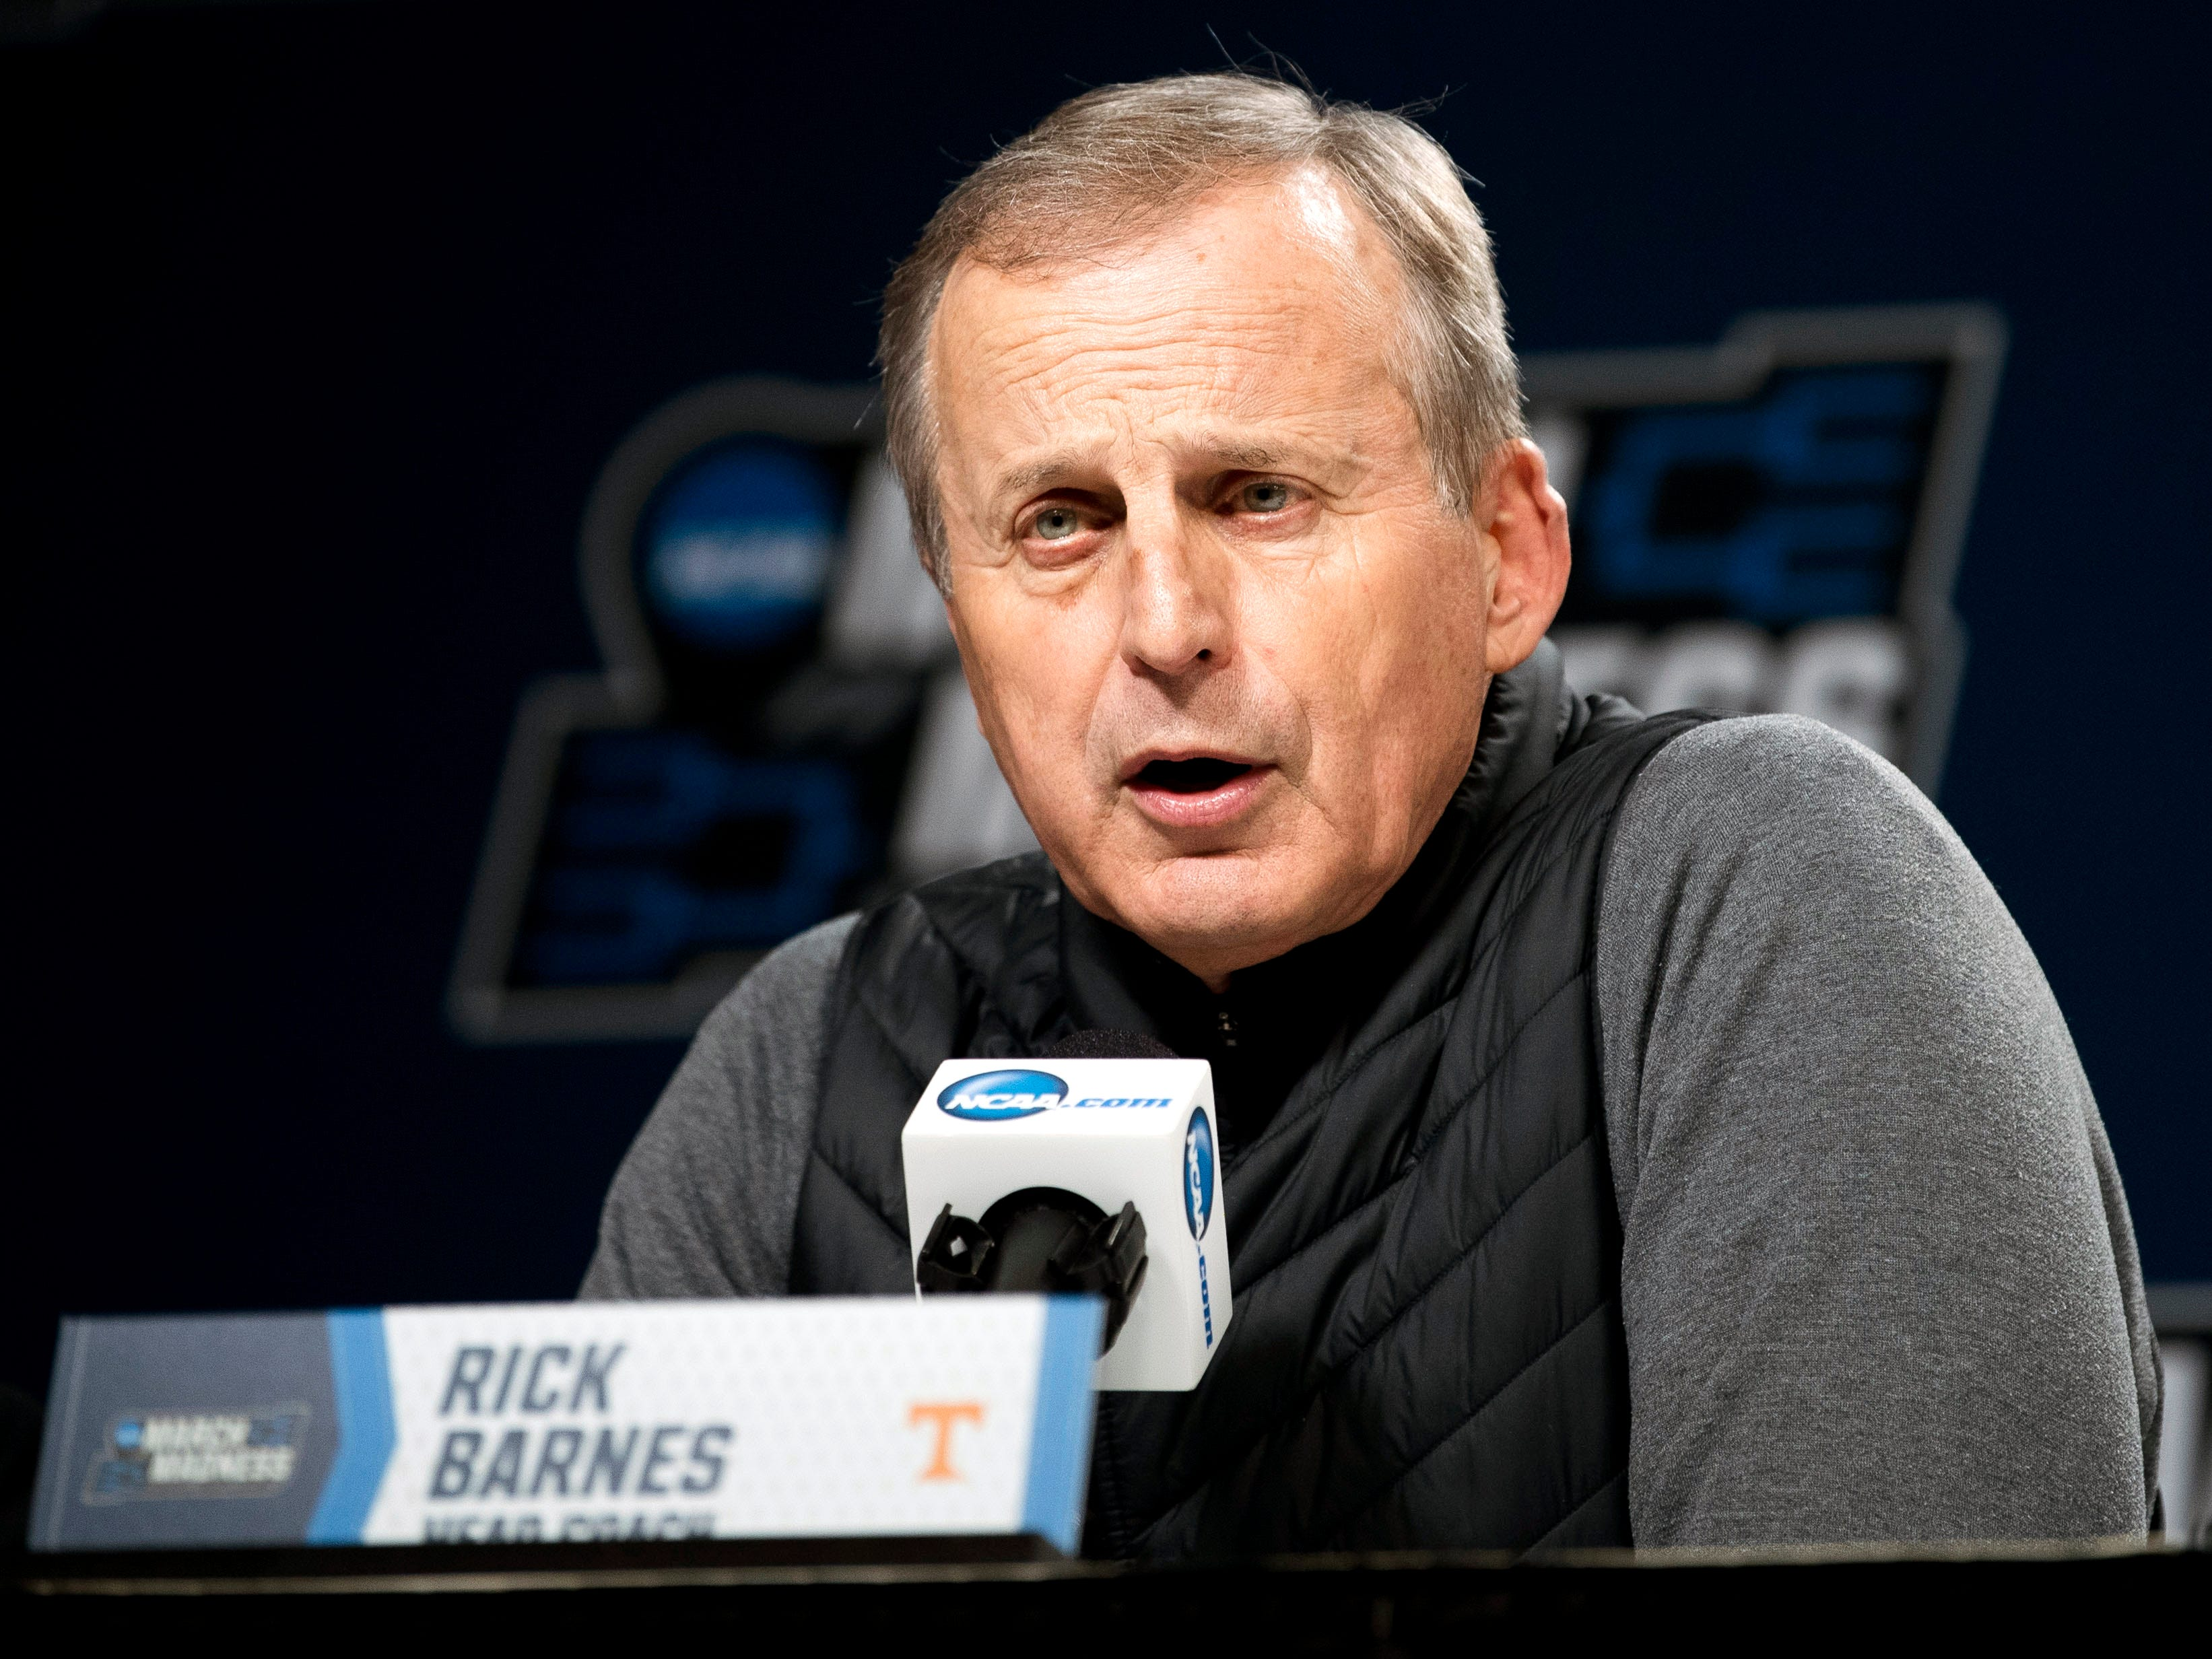 Tennessee head coach Rick Barnes speaks at a press conference on Saturday, March 23, 2019, before the Tennessee Volunteers and Iowa Hawkeyes compete against one another in the second round of the NCAA Tournament held at Nationwide Arena in Columbus, Ohio on Sunday, March 24, 2019.